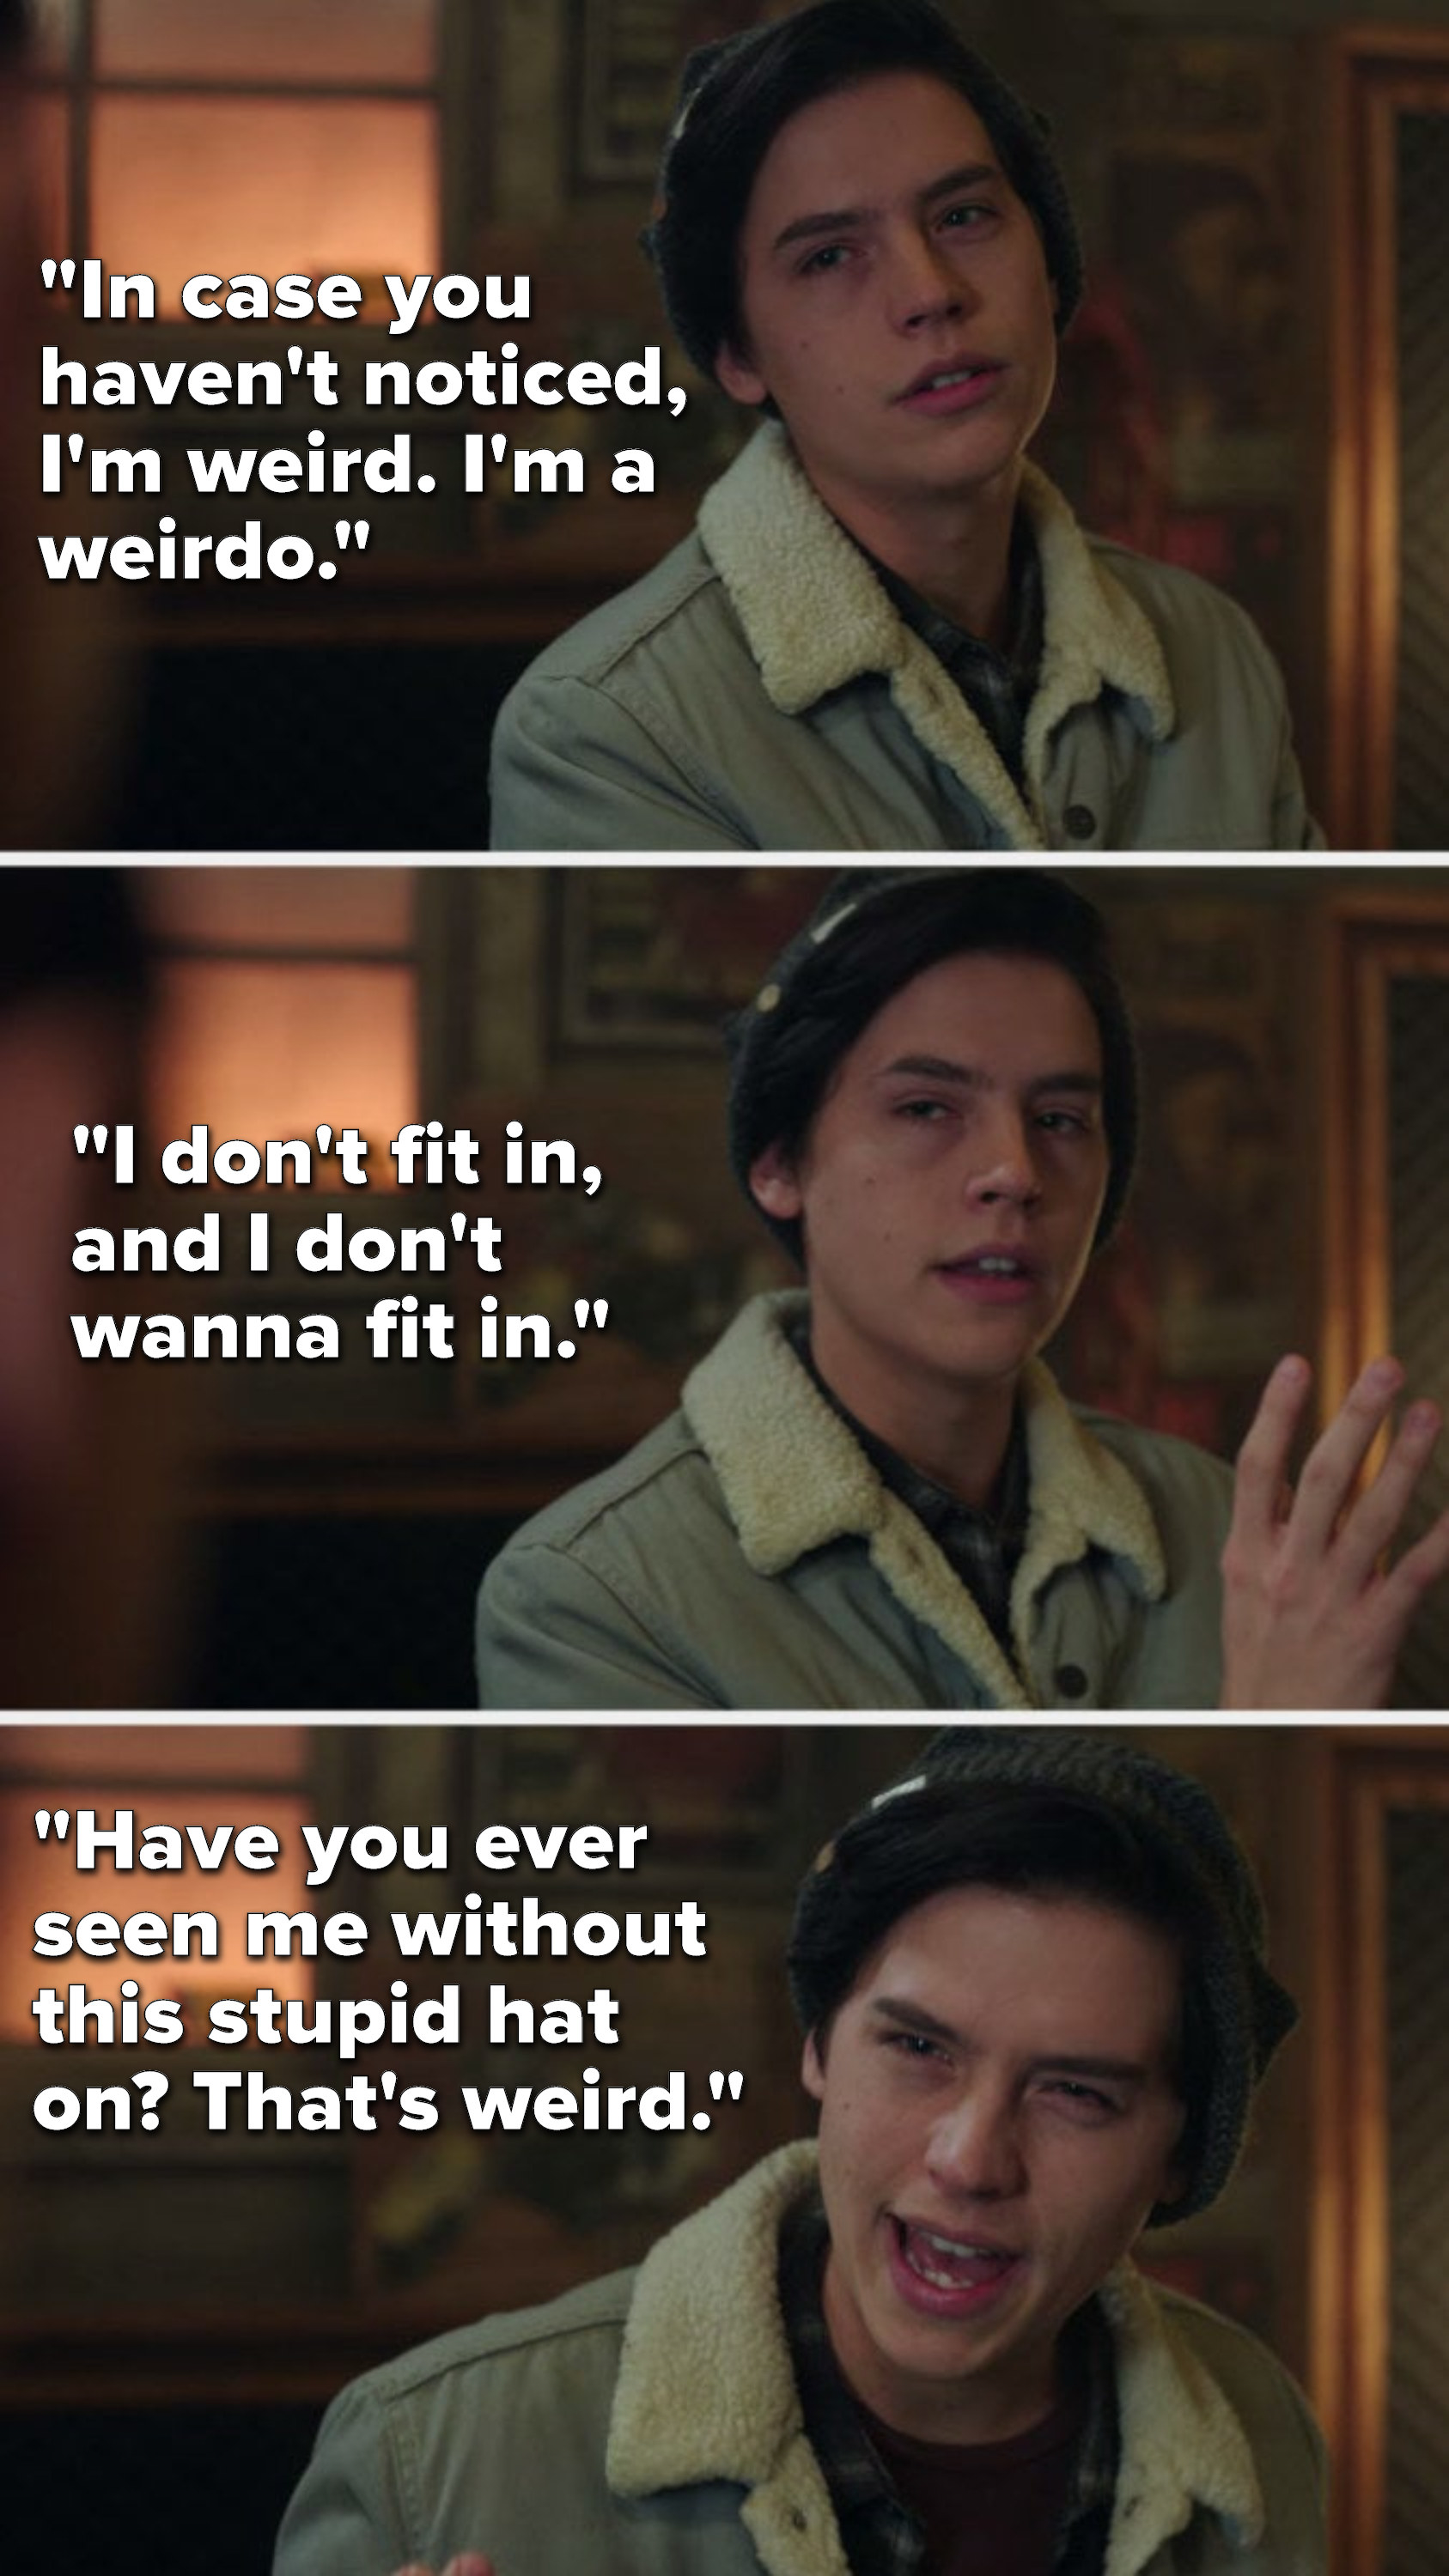 """Jughead says, """"In case you haven't noticed, I'm weird, I'm a weirdo, I don't fit in, and I don't wanna fit in, have you ever seen me without this stupid hat on, that's weird"""""""